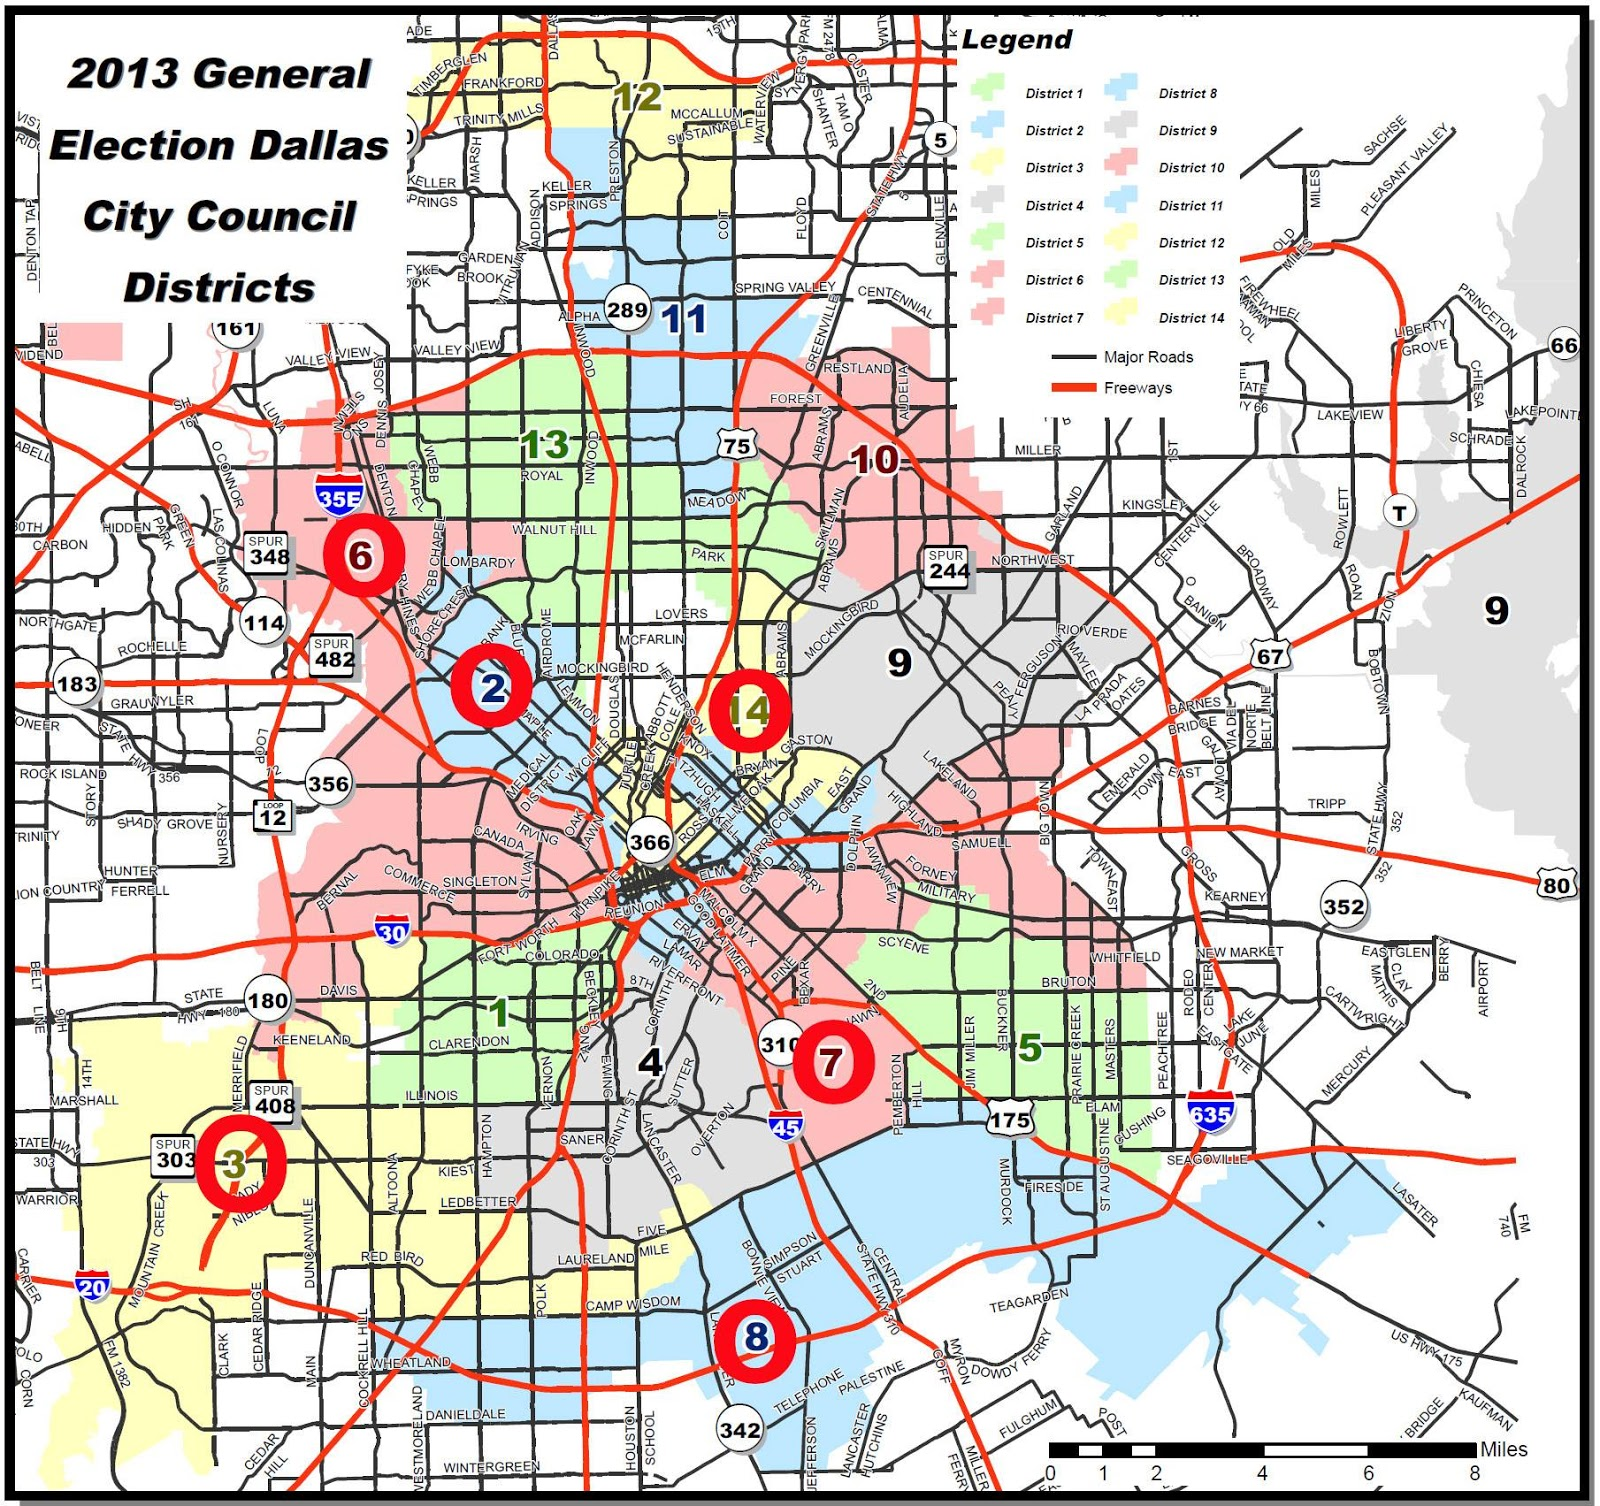 Bill Betzen's Blog: Planning for Dallas City Council Redistricting on